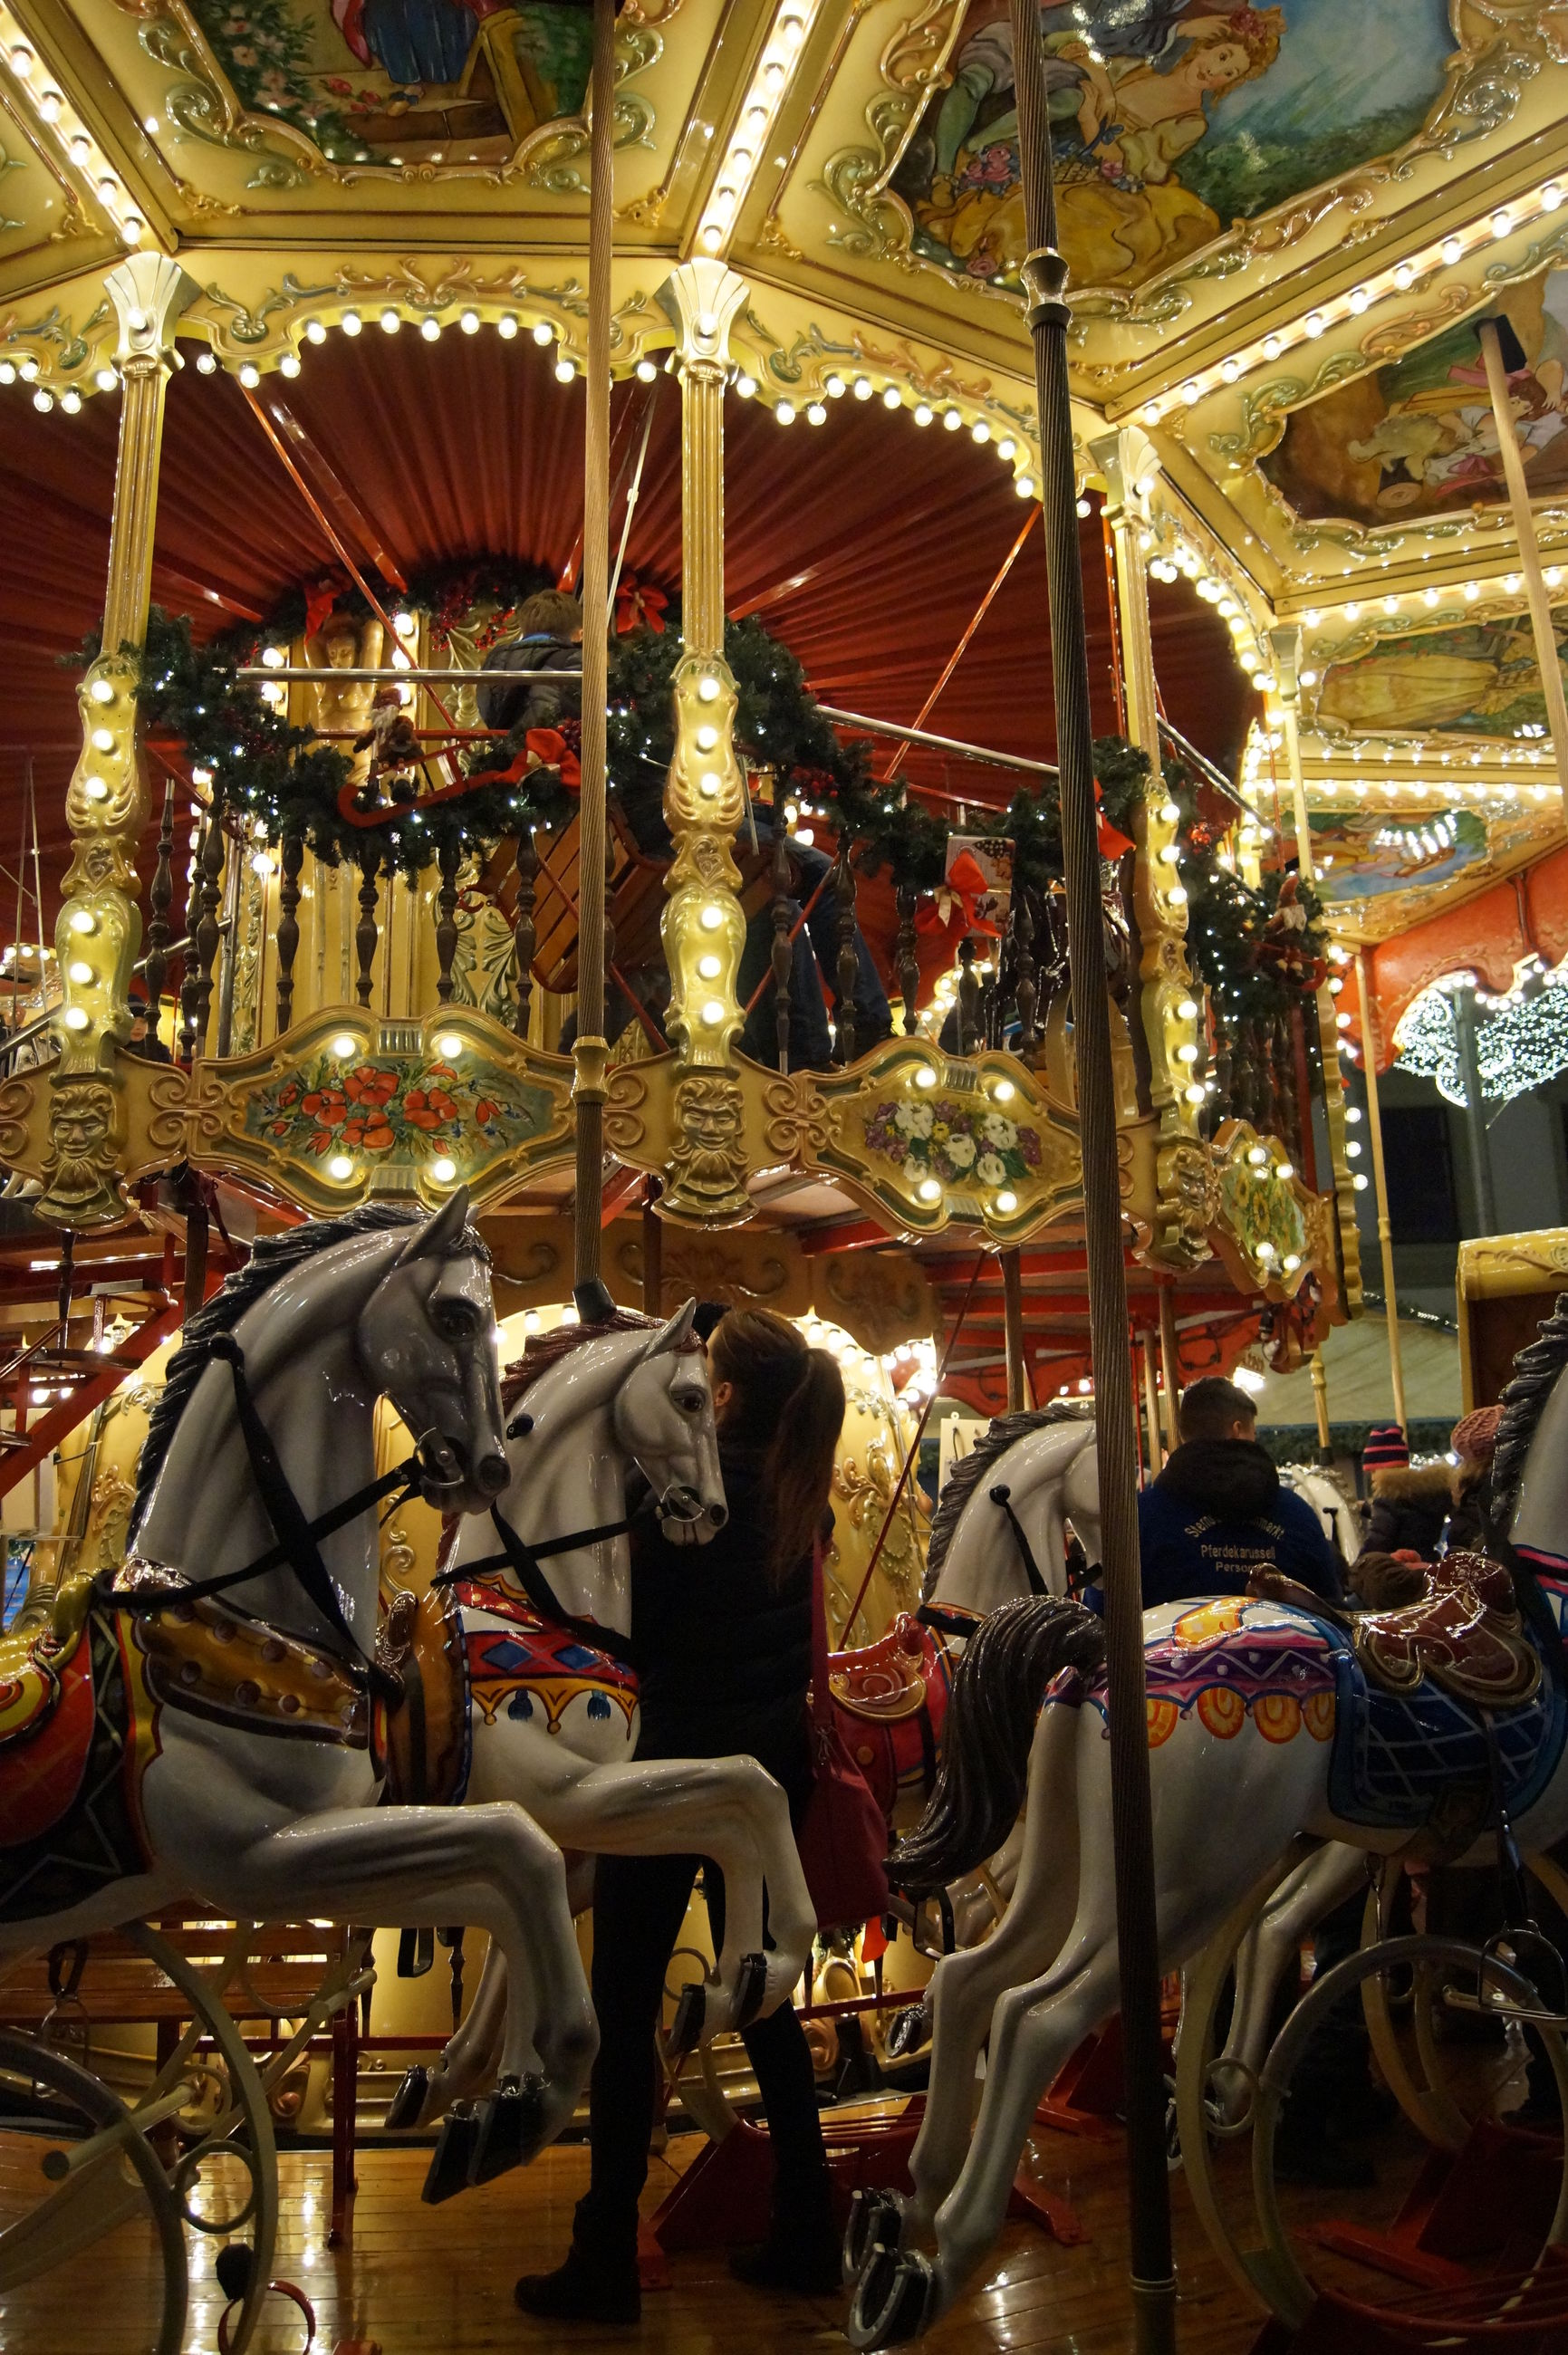 indoors, illuminated, arts culture and entertainment, travel, religion, carousel, place of worship, amusement park, lighting equipment, incidental people, spirituality, decoration, amusement park ride, travel destinations, hanging, ornate, cultures, built structure, low angle view